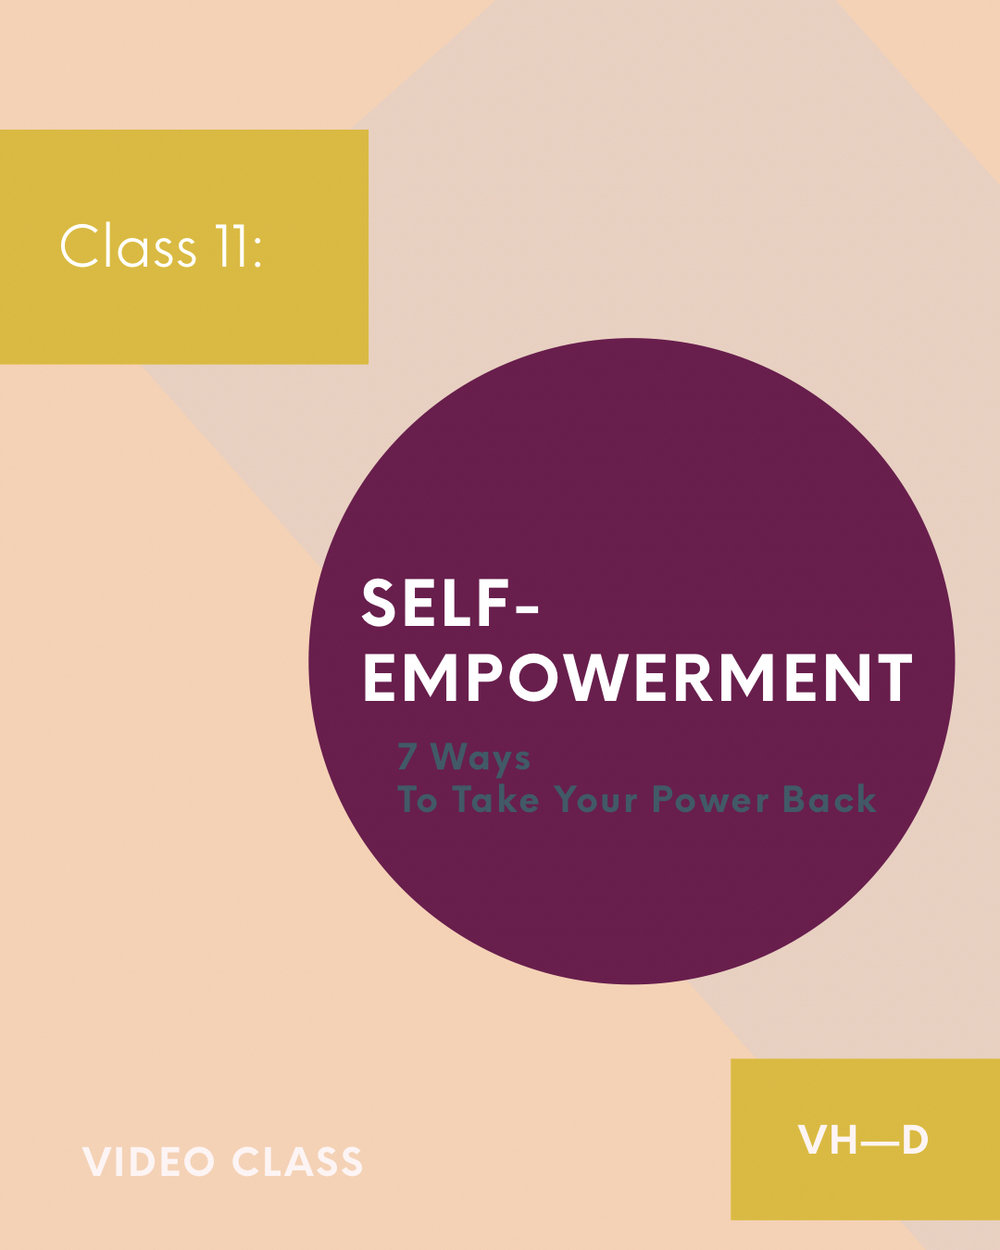 Class 11: Self-Empowerment - Video classEmpowerment allows you to go higher and beyond where you are now!Are you living an empowered life?Dis-empowerment can cause negative thoughts, fears, doubts, pain, insecurities, circumstances, lower vibrations, and unhealthy subconscious-beliefs, to consume our lives, to keep us from living a fulfilling life, to keep us from reaching out higher potential, and from thriving in life; if we allow them to.In class 11, we'll cover 7 essentials ways to put Self-Empowerment into practice and full-effect.Let's thrive in, and through life!